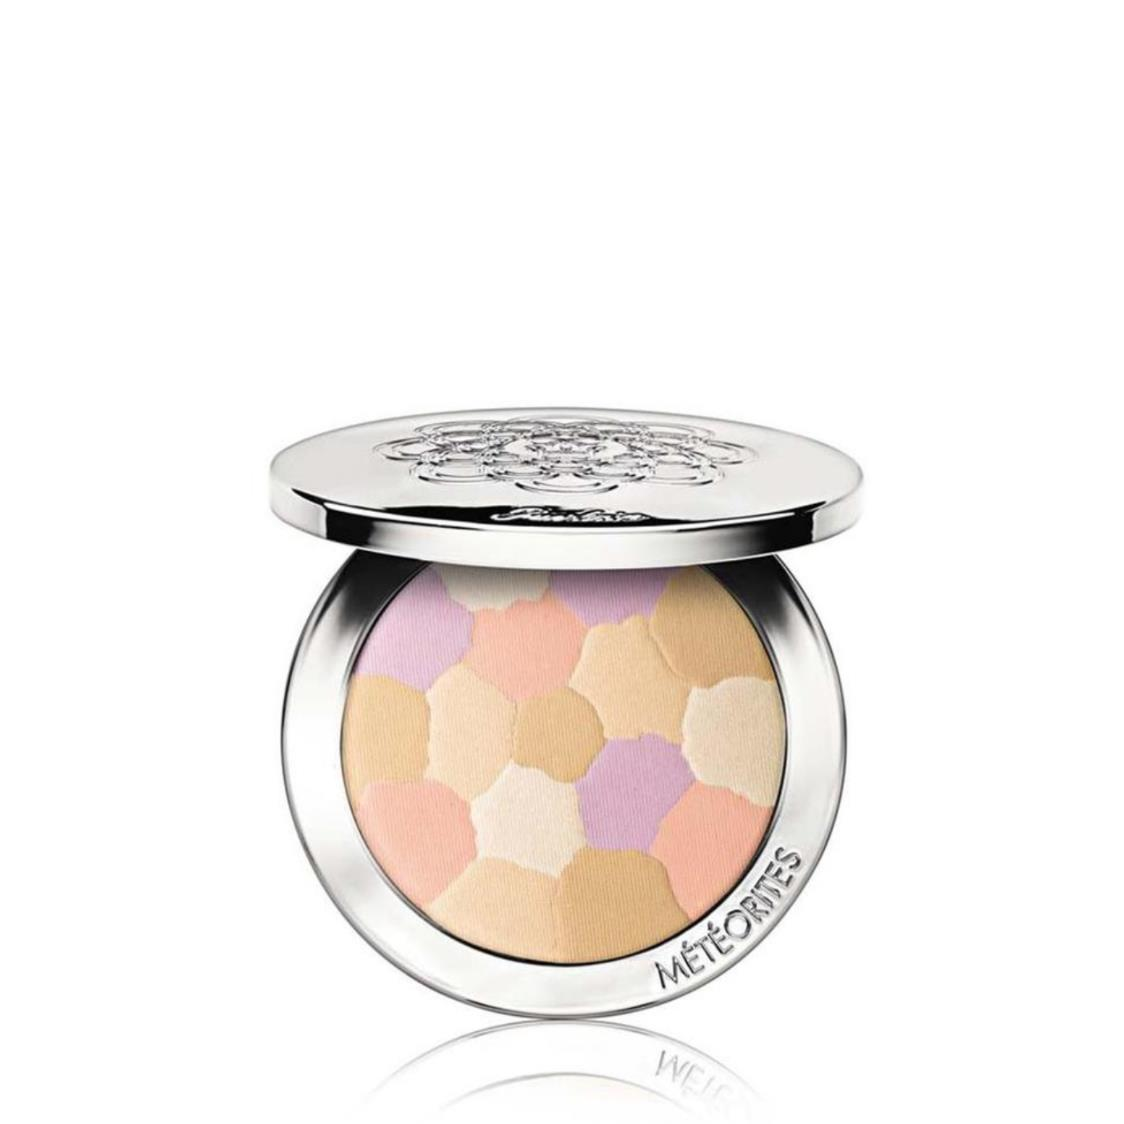 Mtorites Compact Light-Revealing Powder